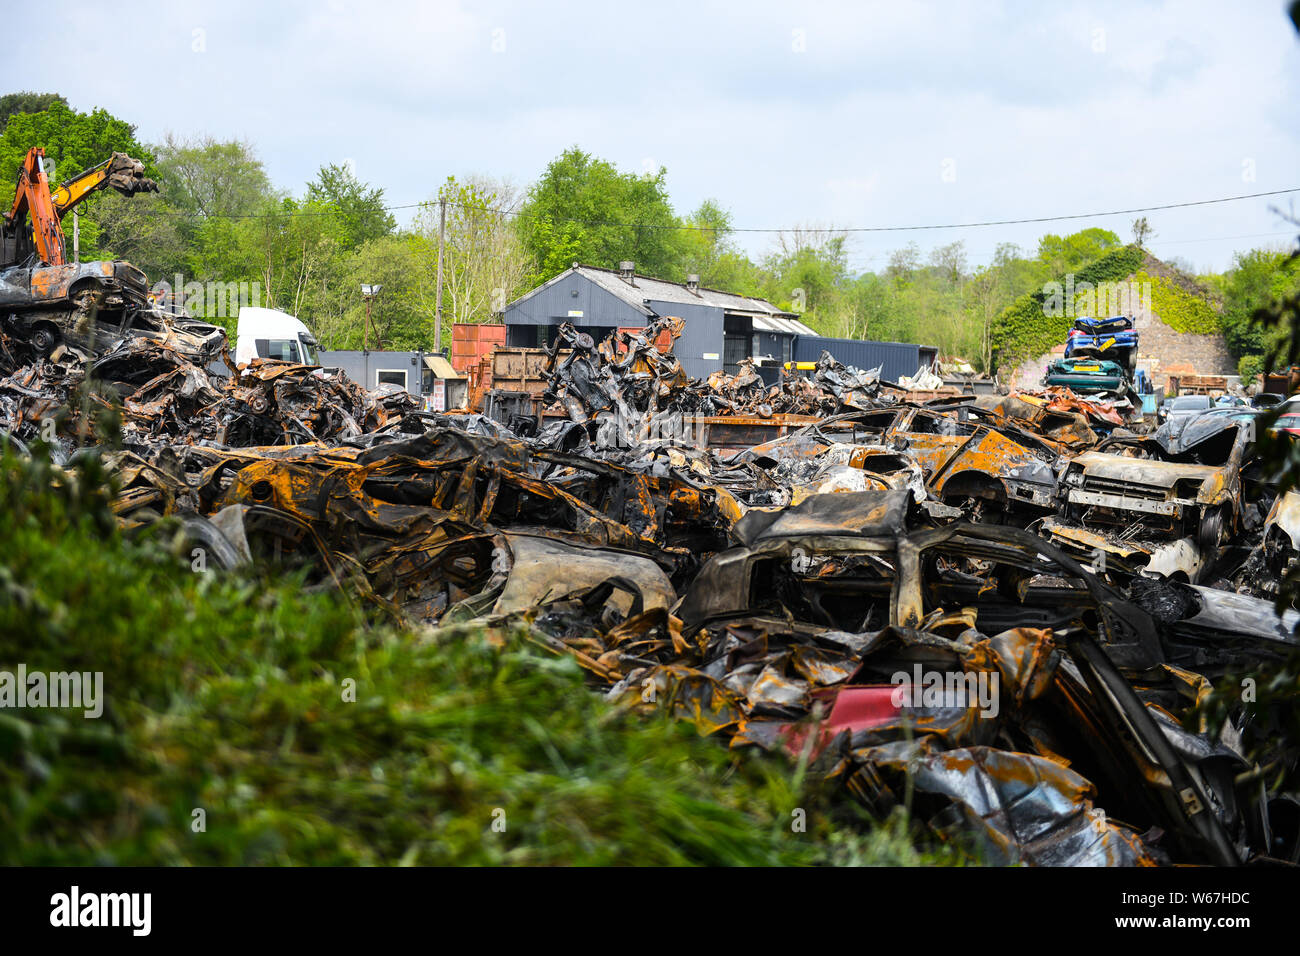 Piles of burnt cars are pictrured at a scrap yard in Ammanford, Wales, UK after a fire, leaving twisted and chard metal everywhere. Stock Photo